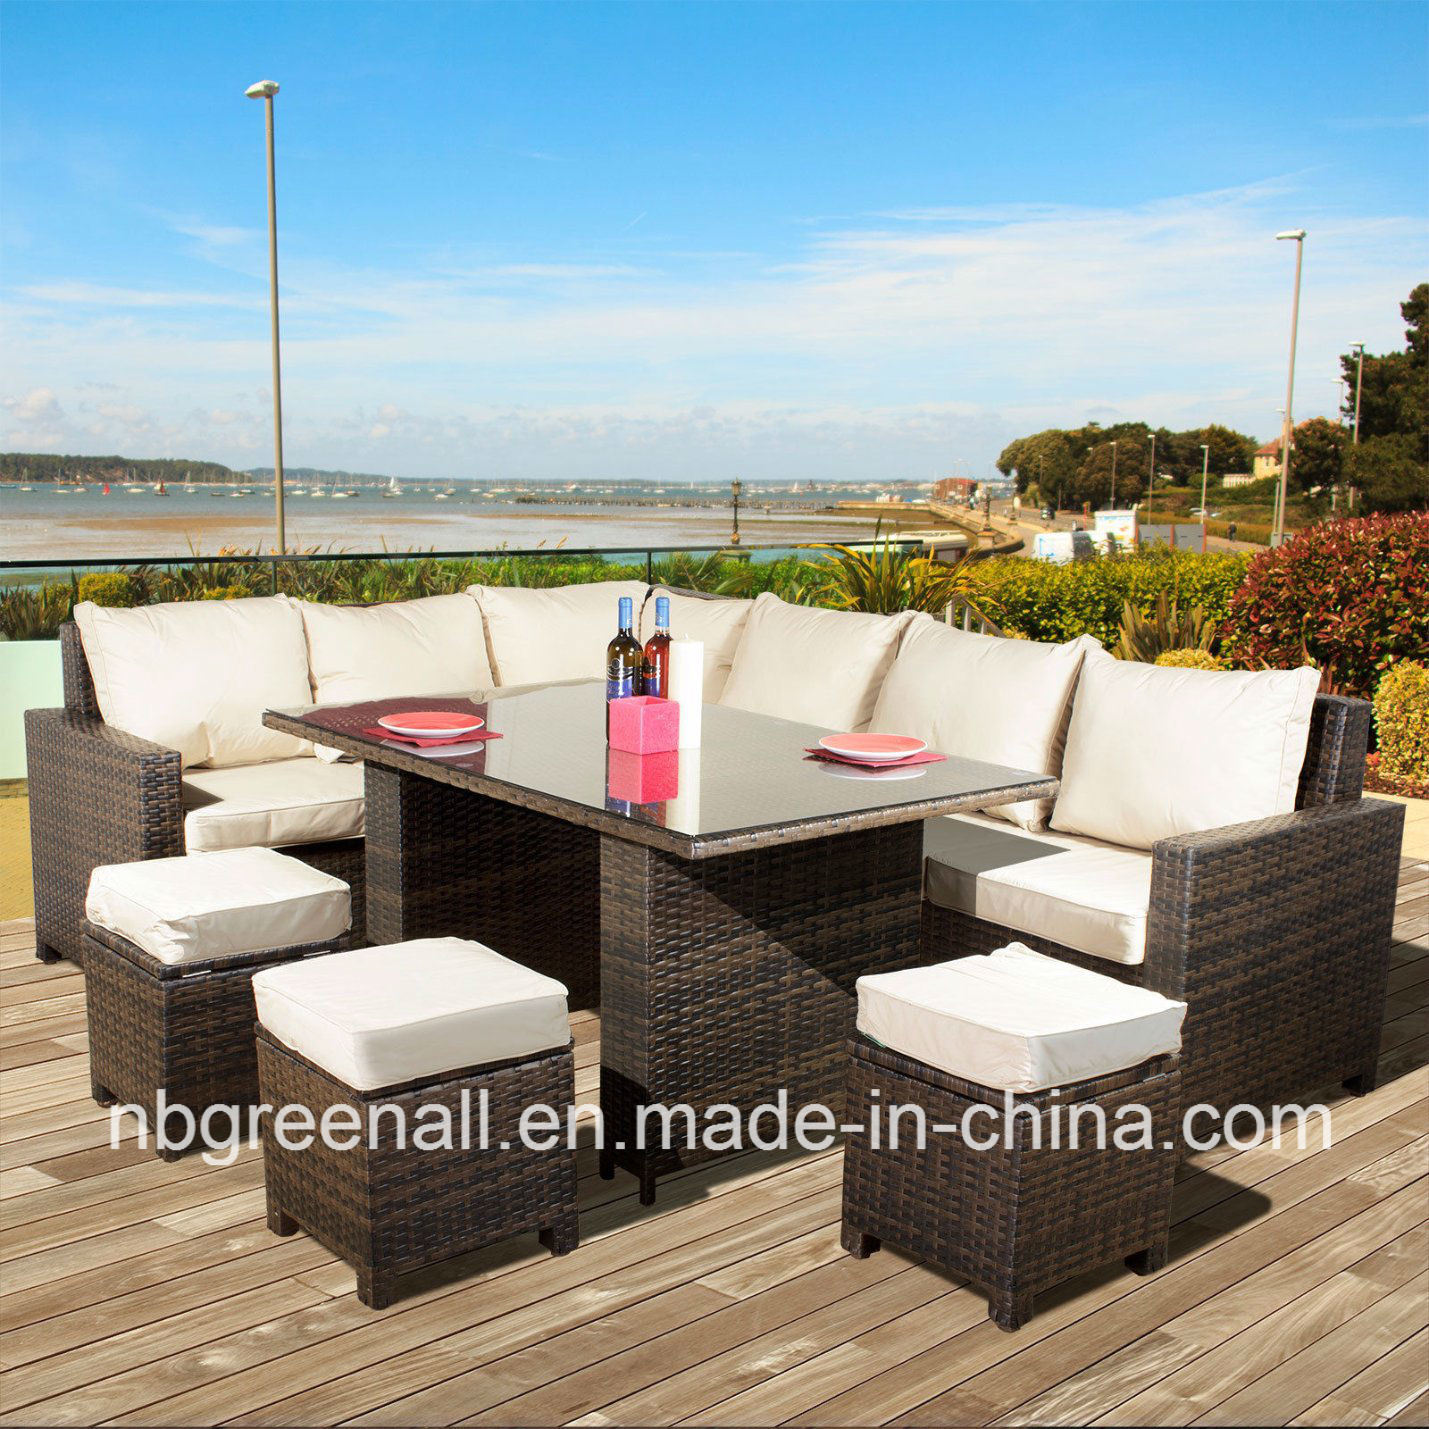 8 Seater Rattan Garden Patio Corner Dining Outdoor Furniture pictures & photos